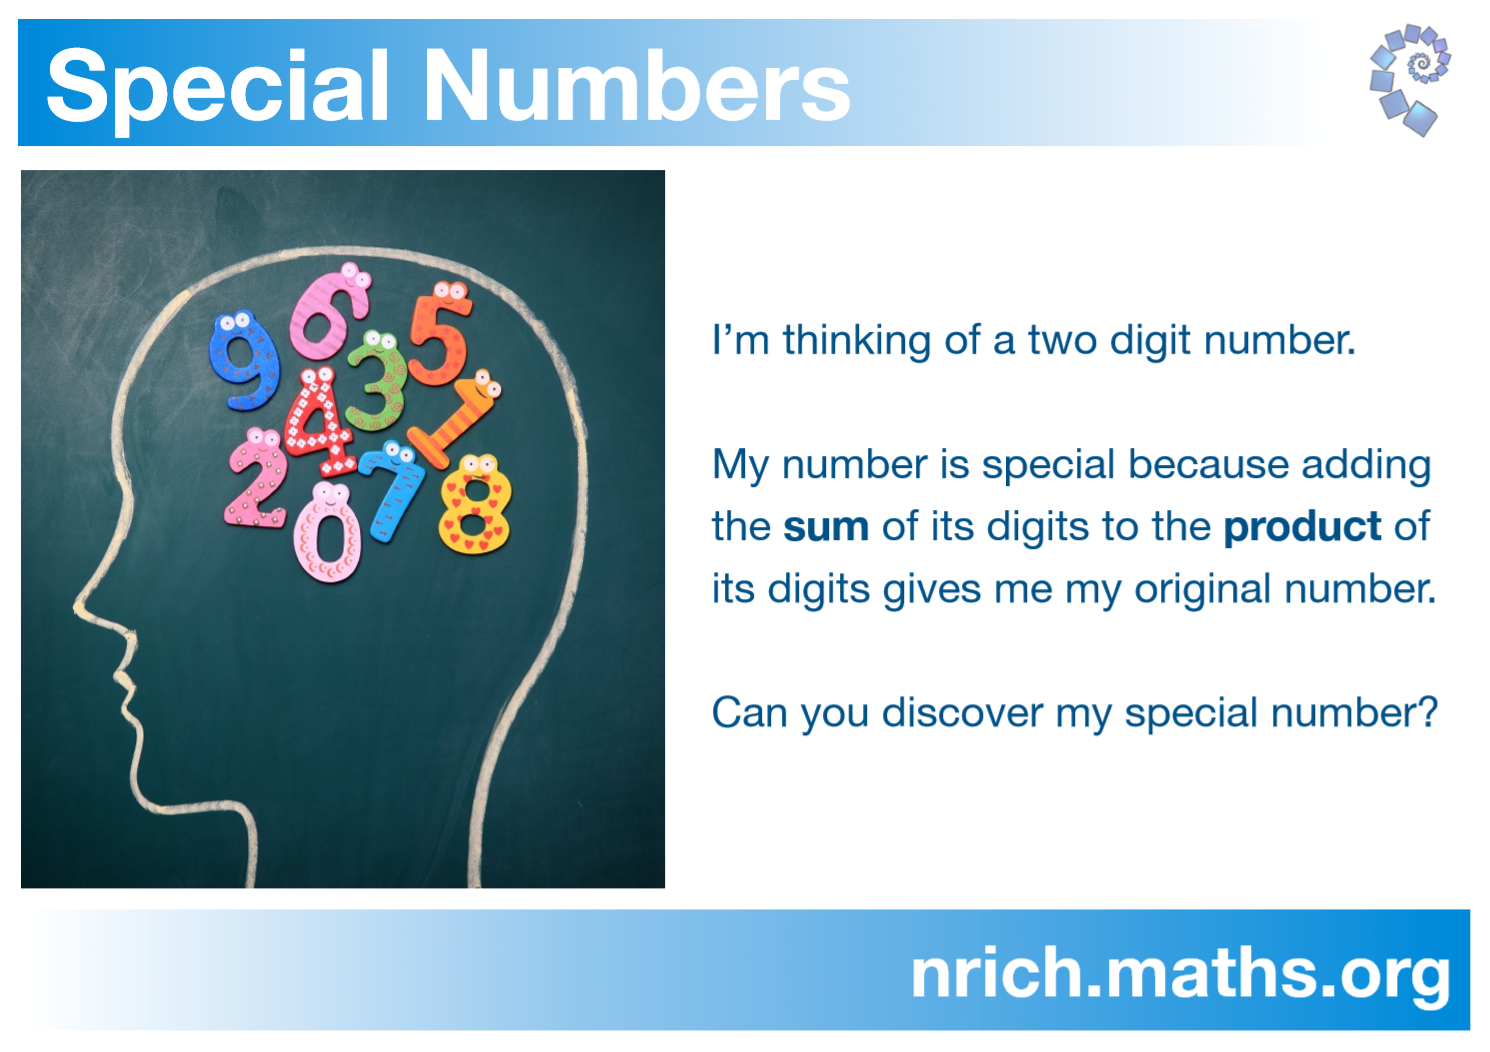 Special Numbers Poster : nrich.maths.org